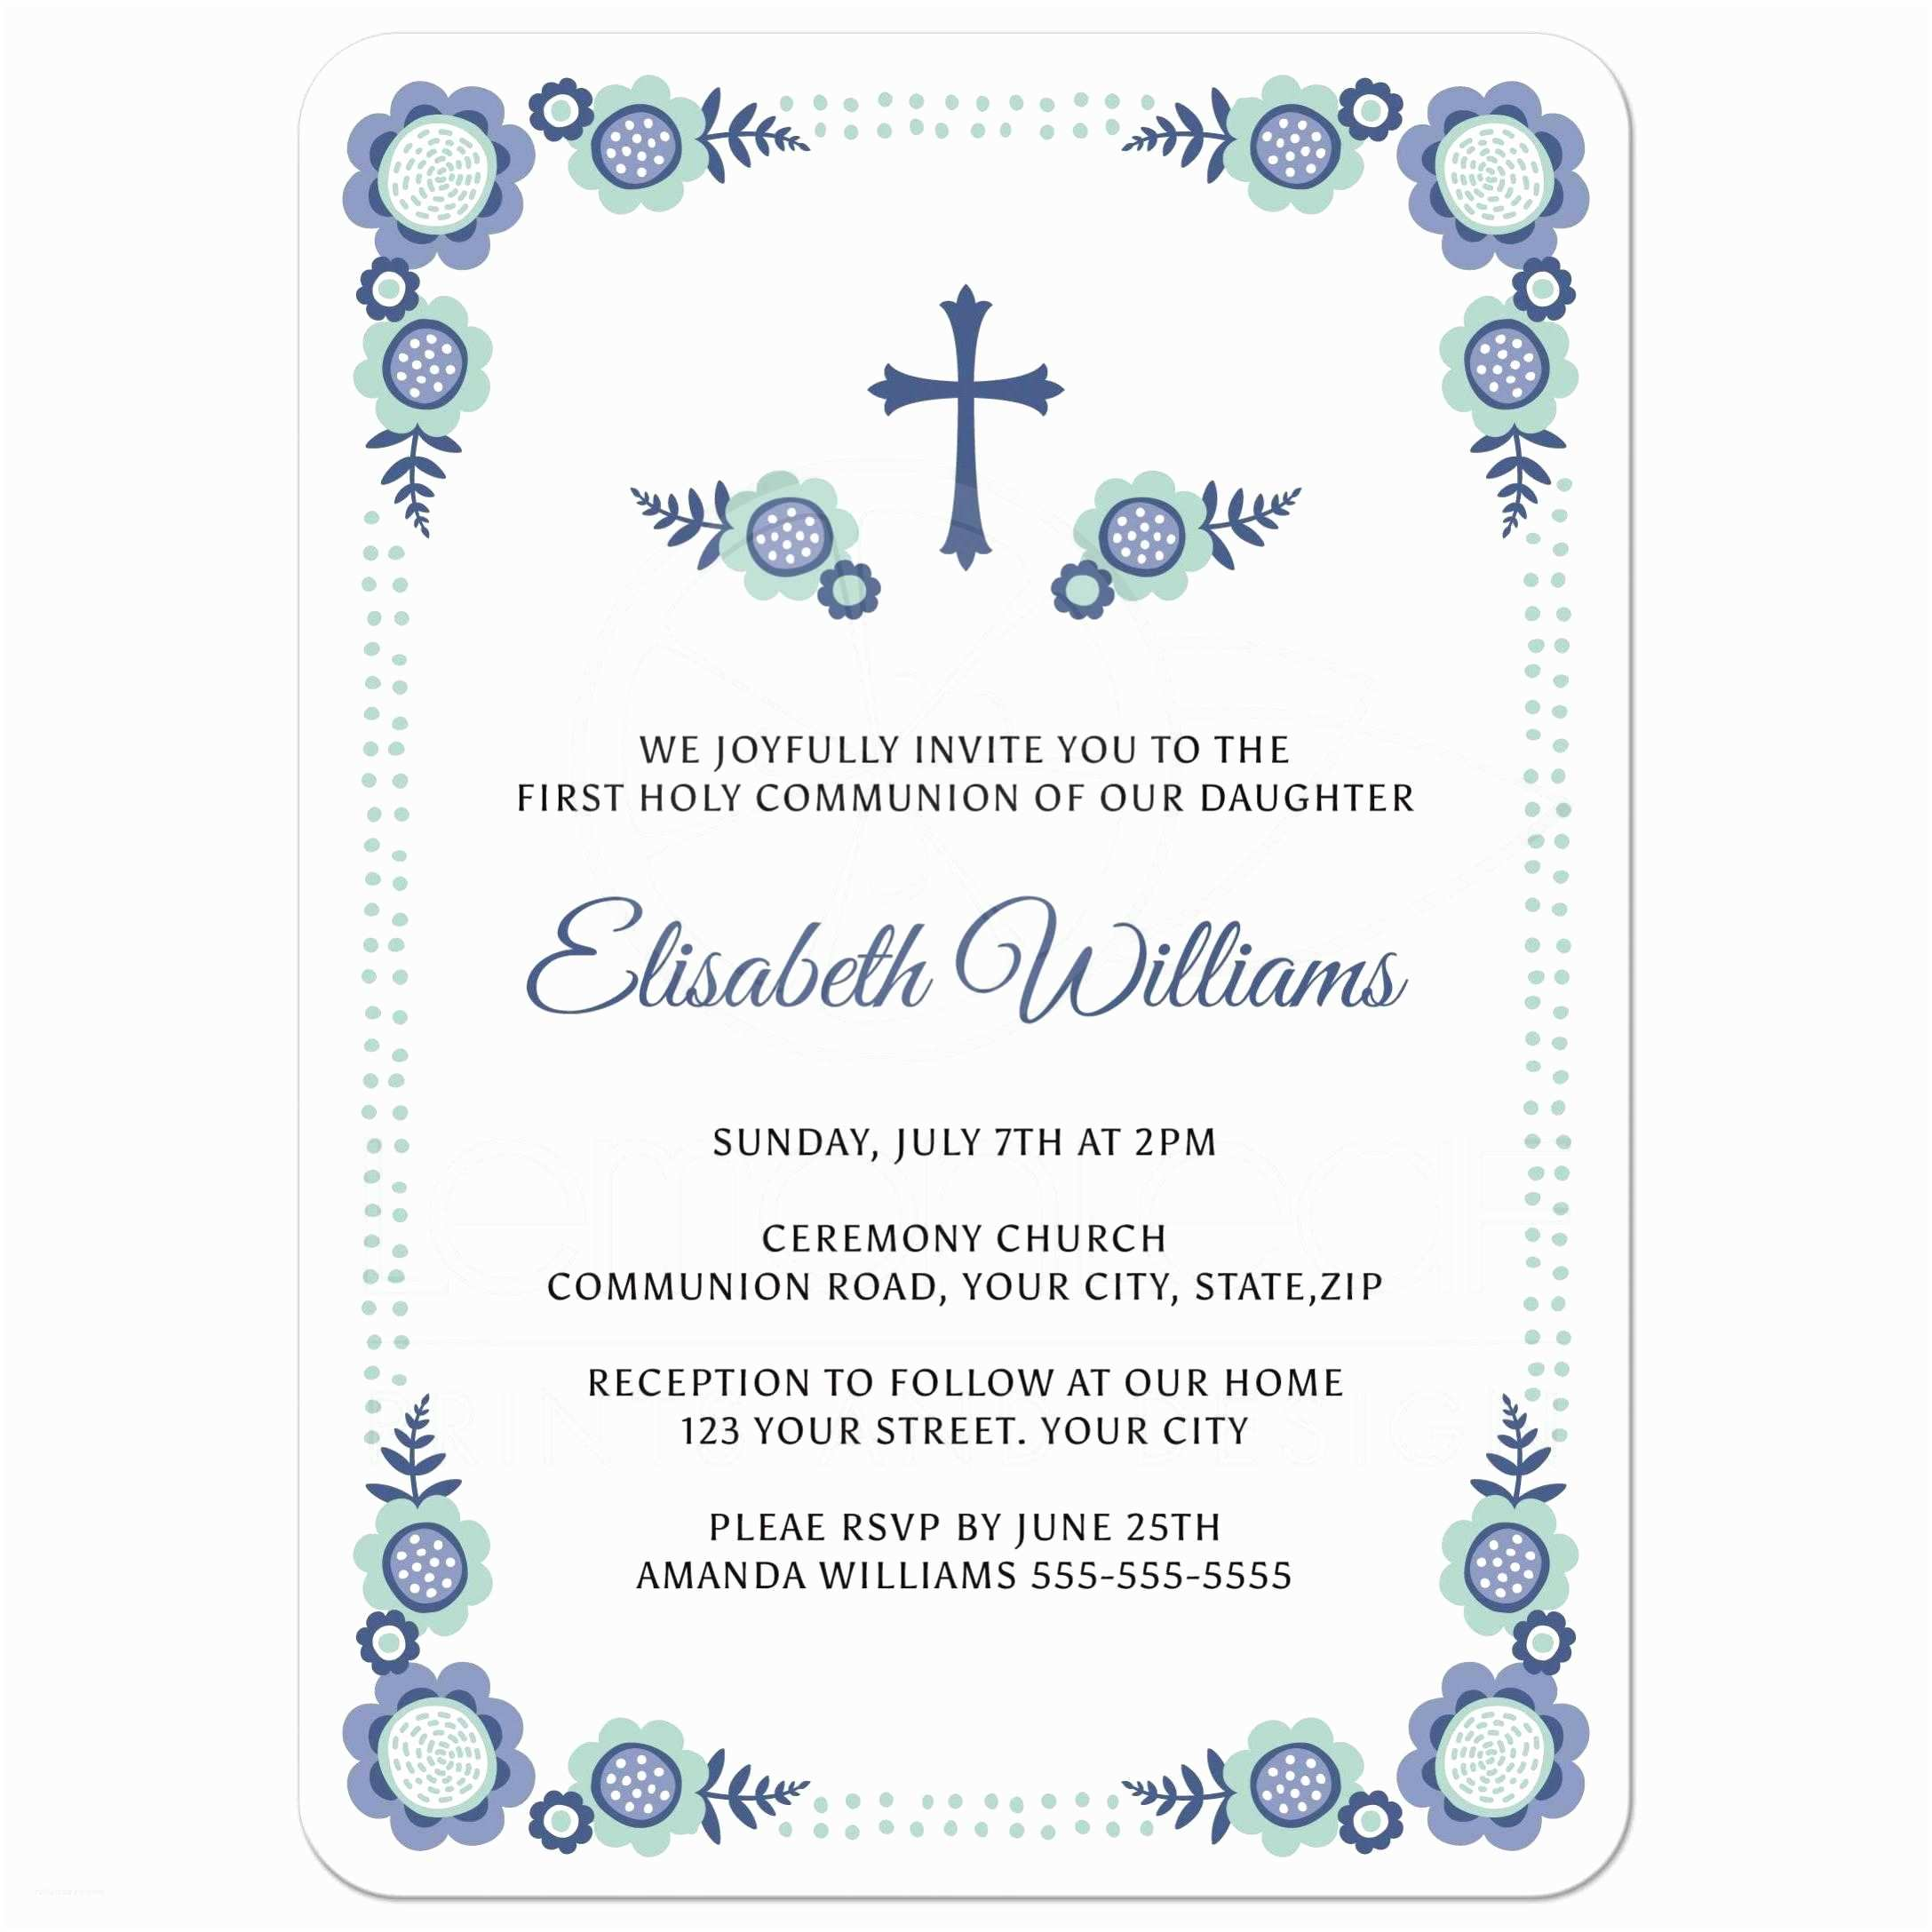 Communion Invitations Blue Bloom First Holy Munion Invitation with Cute